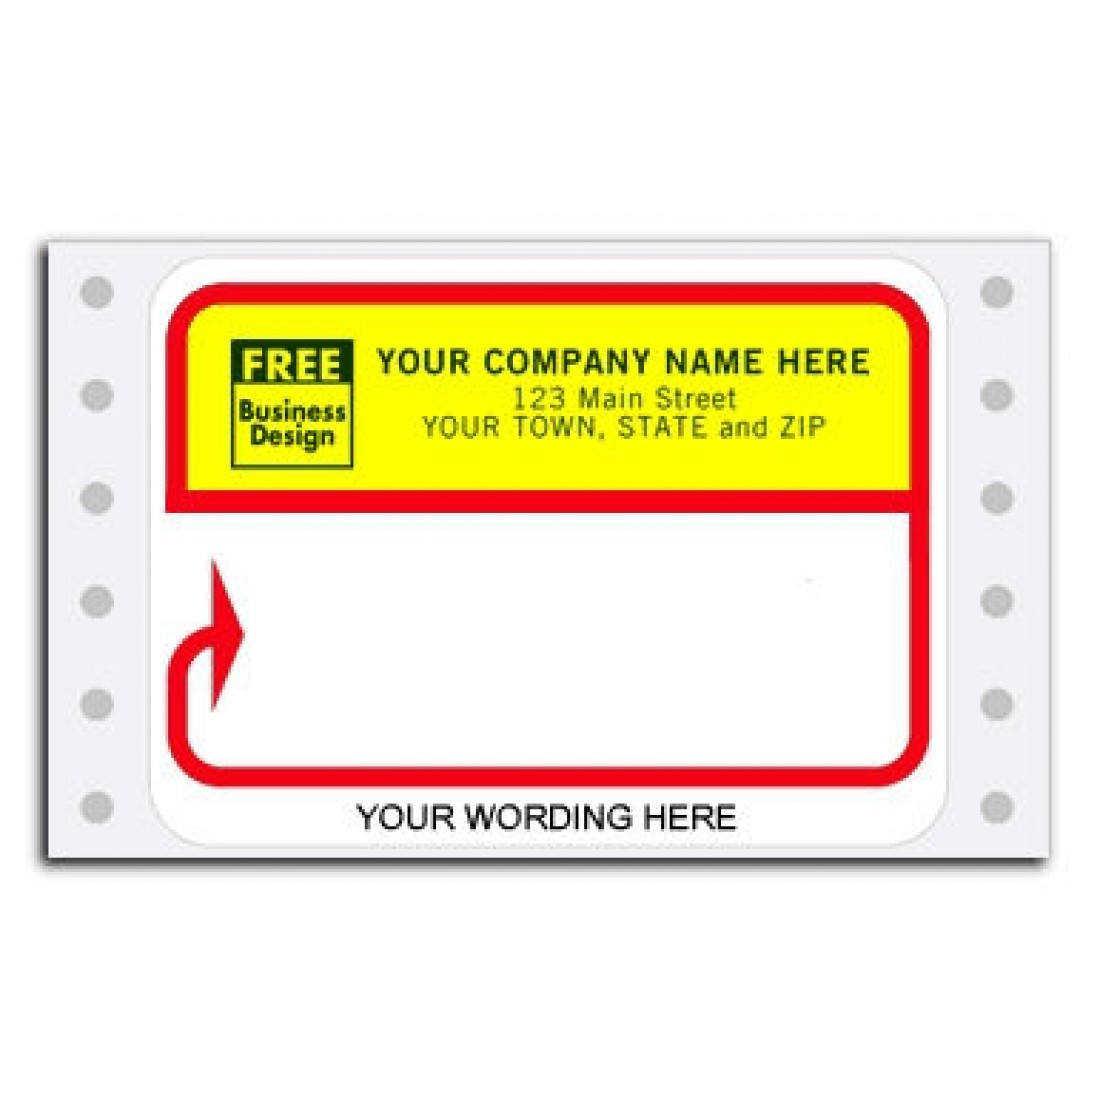 D213, Continuous Mailing Label, Red/Bight Yellow